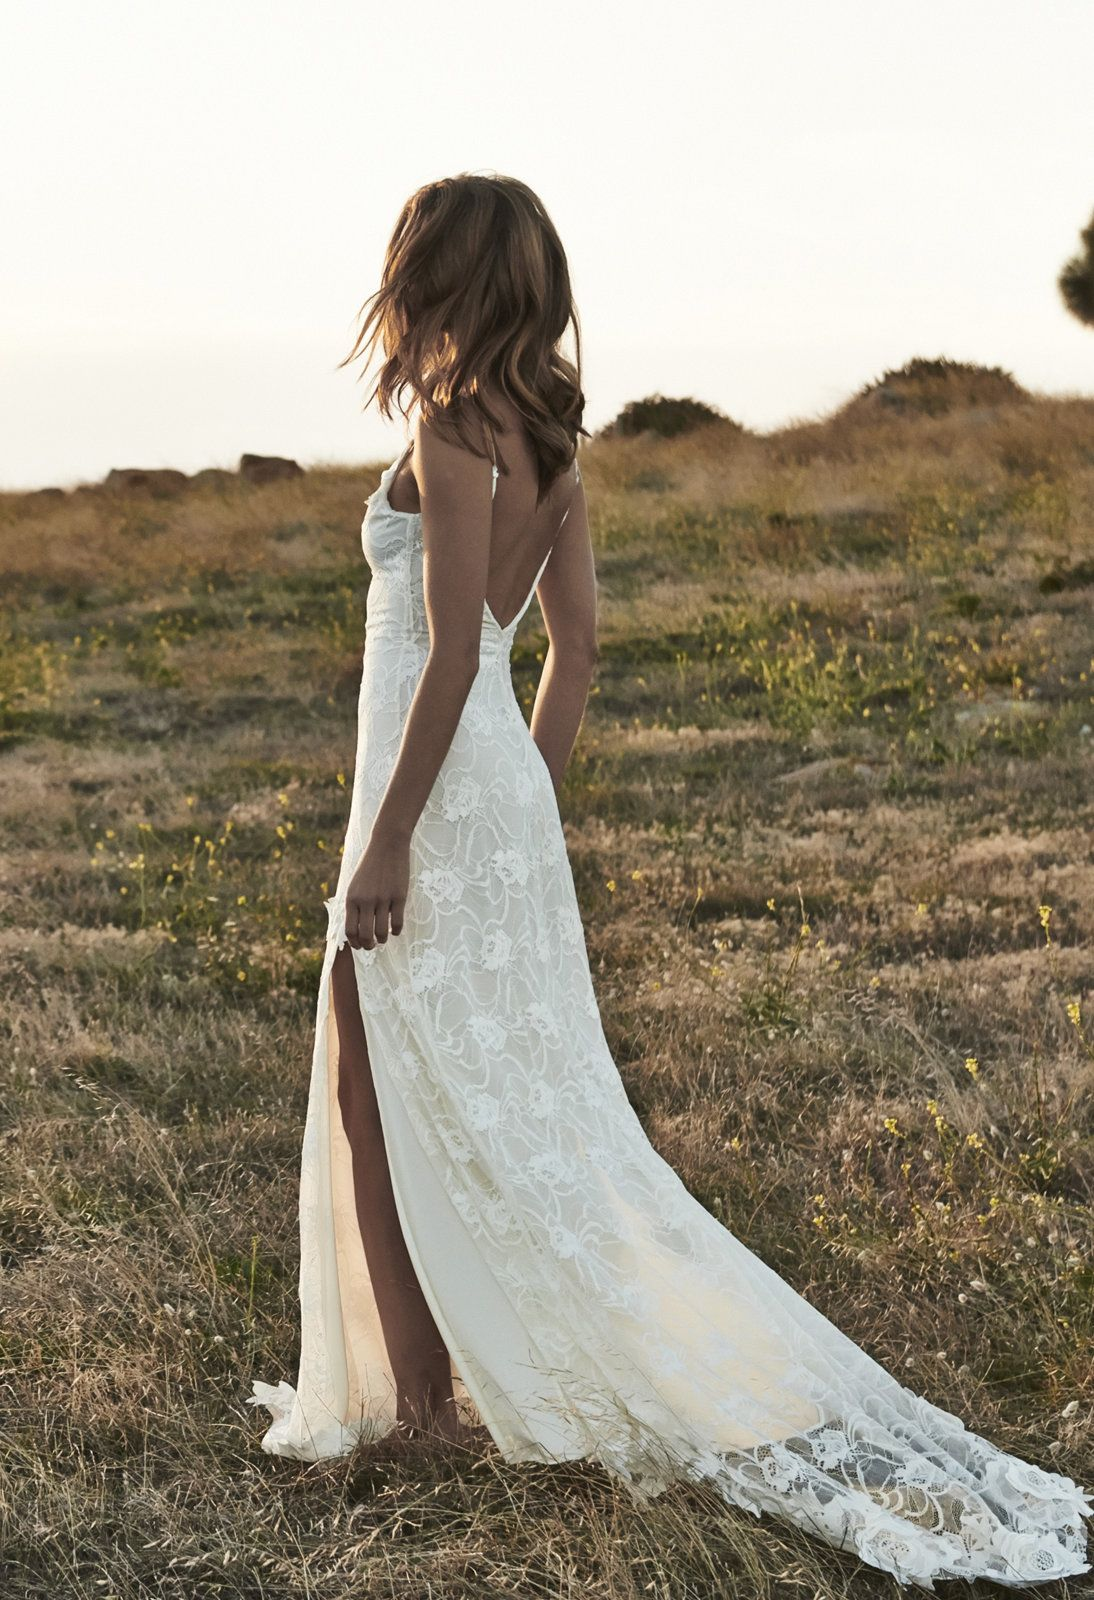 Lace hippie wedding dress  Lottie  Wedding  Pinterest  Vestidos de novia Boda and Novios